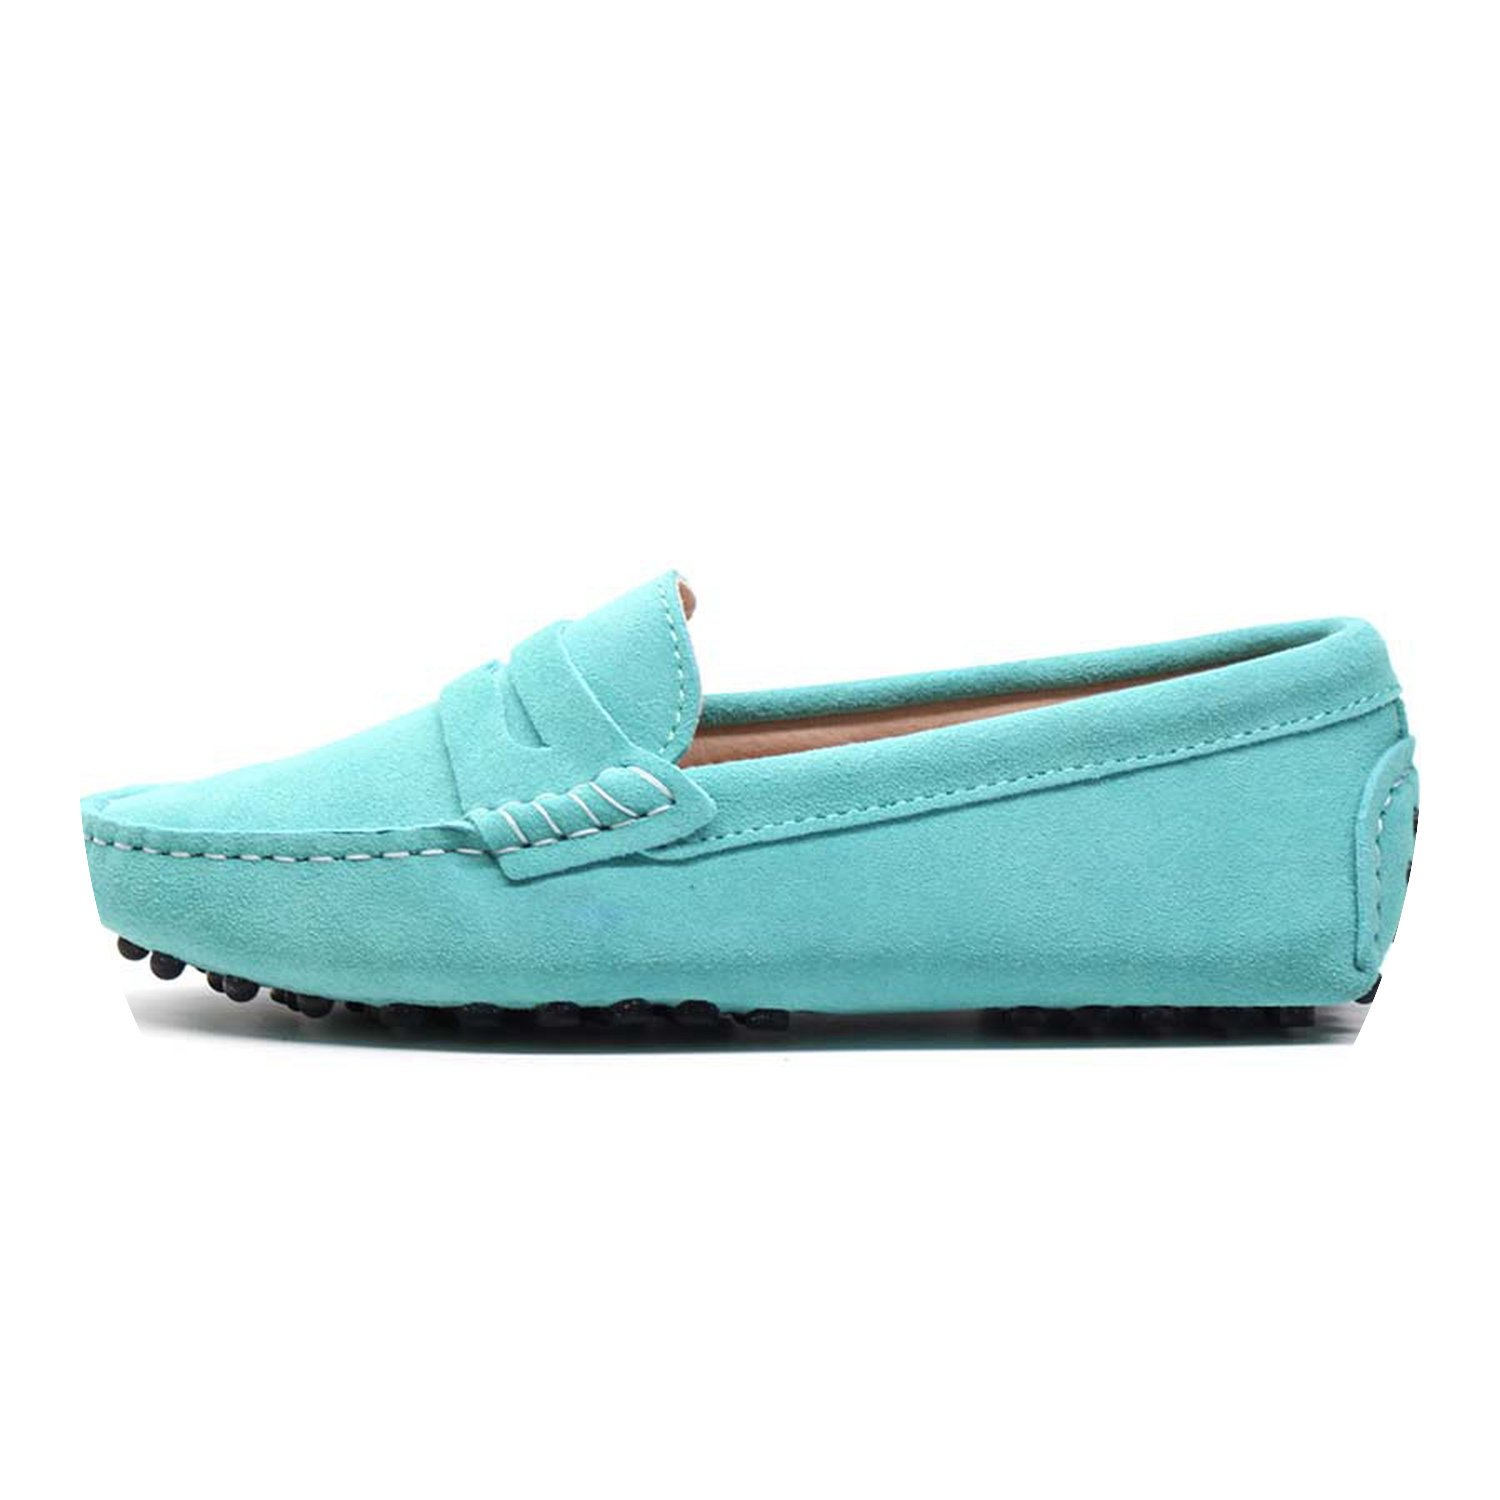 2018 New Women Flats Genuine Leather Driving Shoes Summer Women Casual Shoes B07DTXNC3N 8 B(M) US|Mint Green